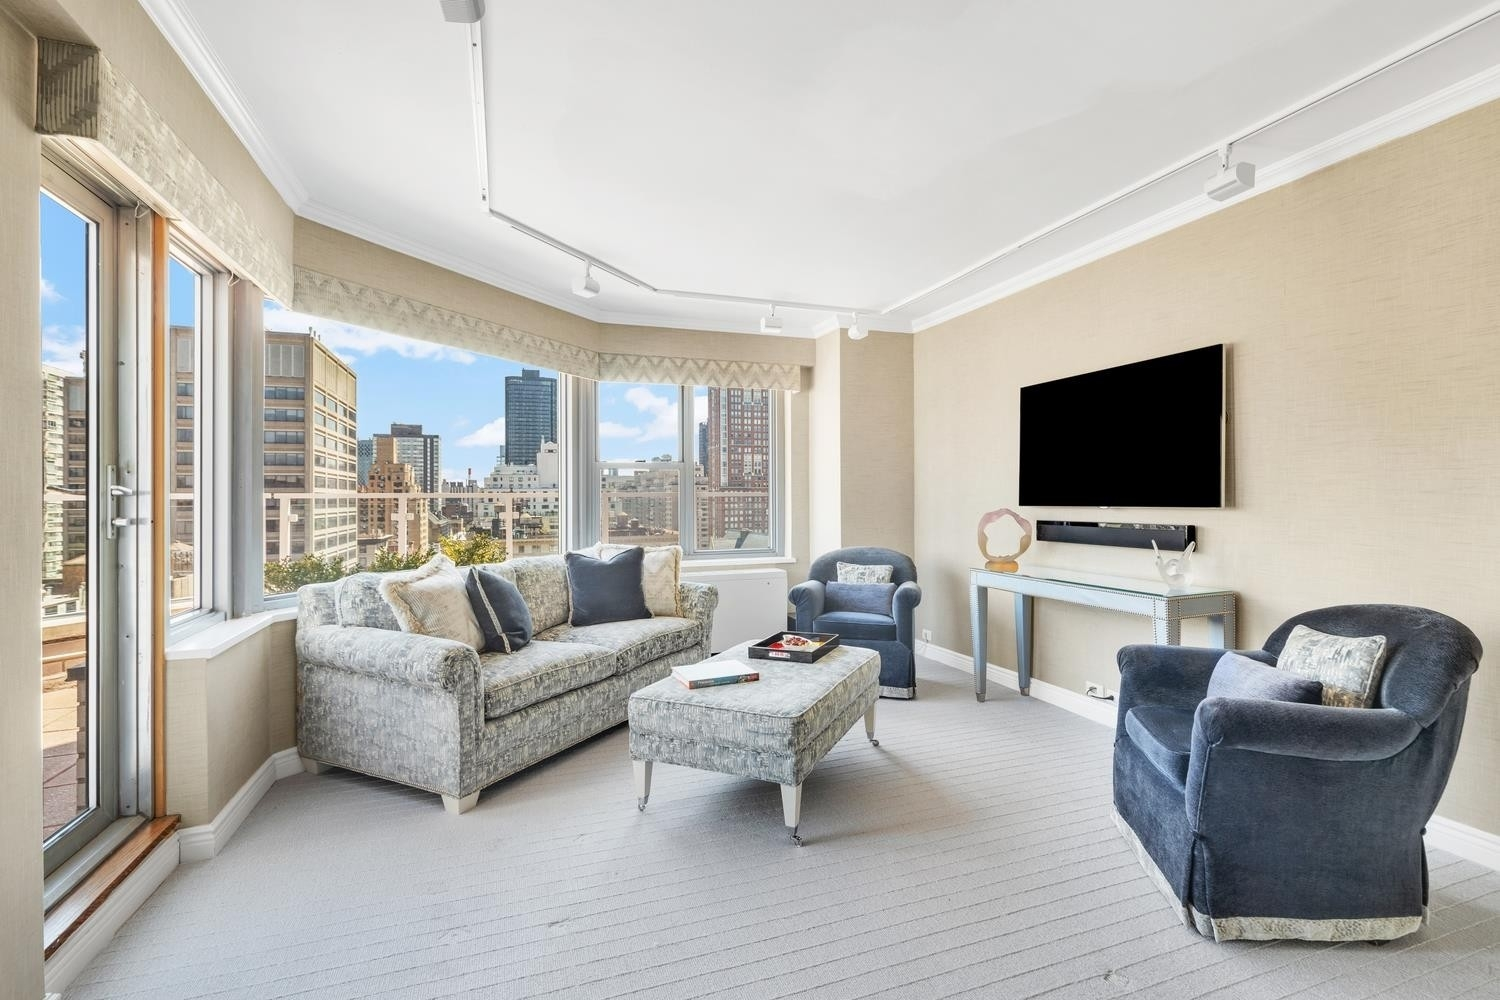 9. Co-op Properties for Sale at 650 PARK AVE , 19B Lenox Hill, New York, NY 10065